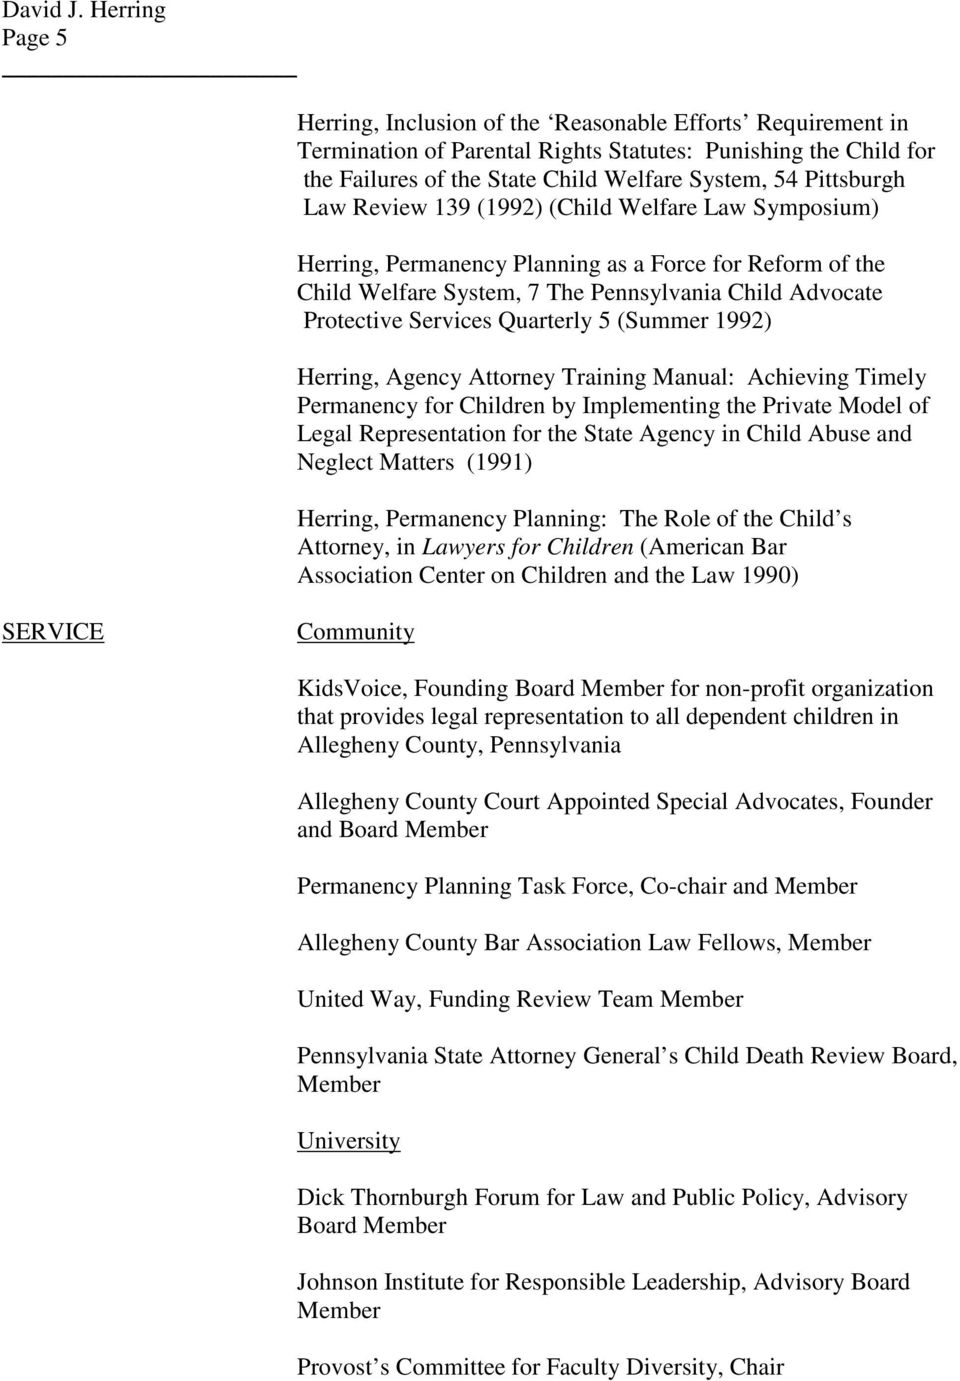 (Summer 1992) Herring, Agency Attorney Training Manual: Achieving Timely Permanency for Children by Implementing the Private Model of Legal Representation for the State Agency in Child Abuse and